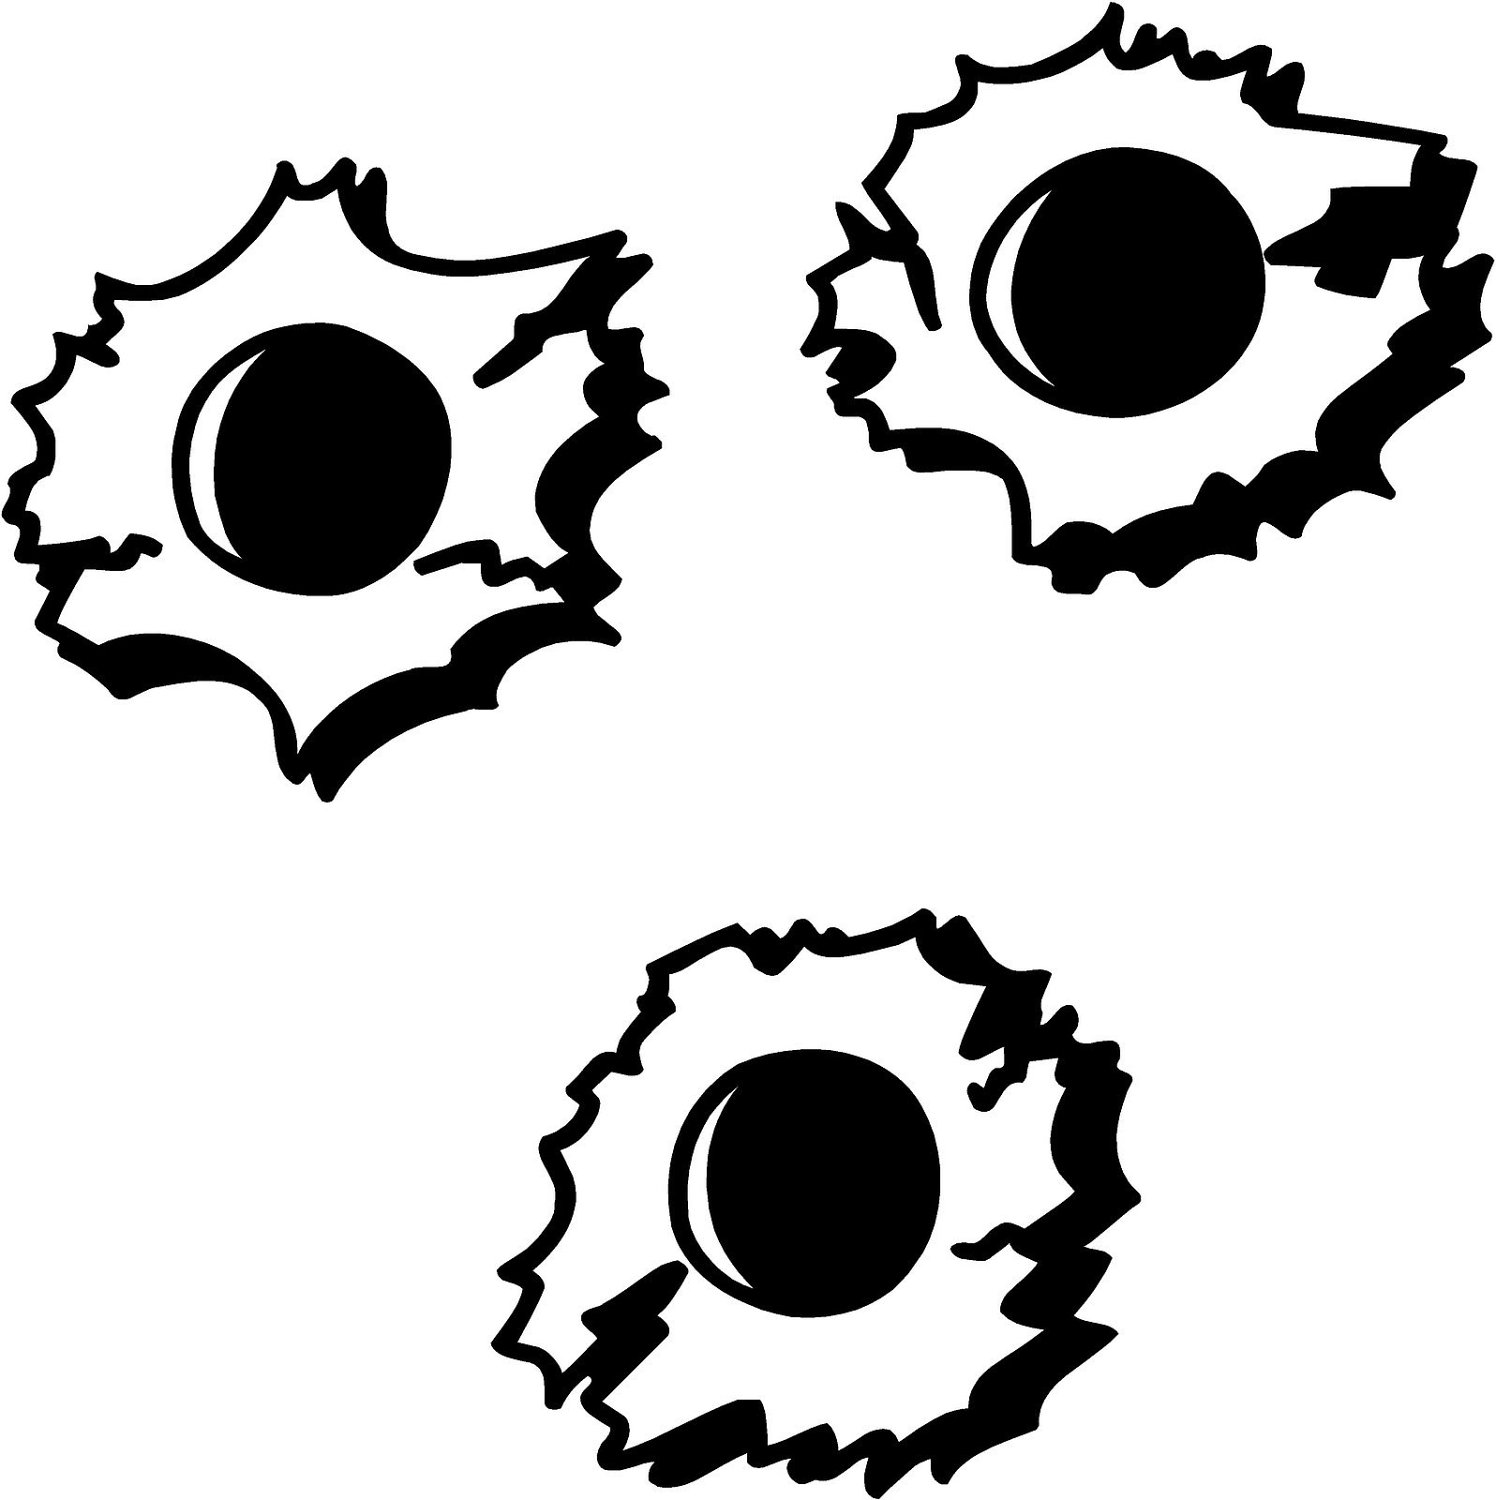 Bullet Hole clipart #3, Download drawings